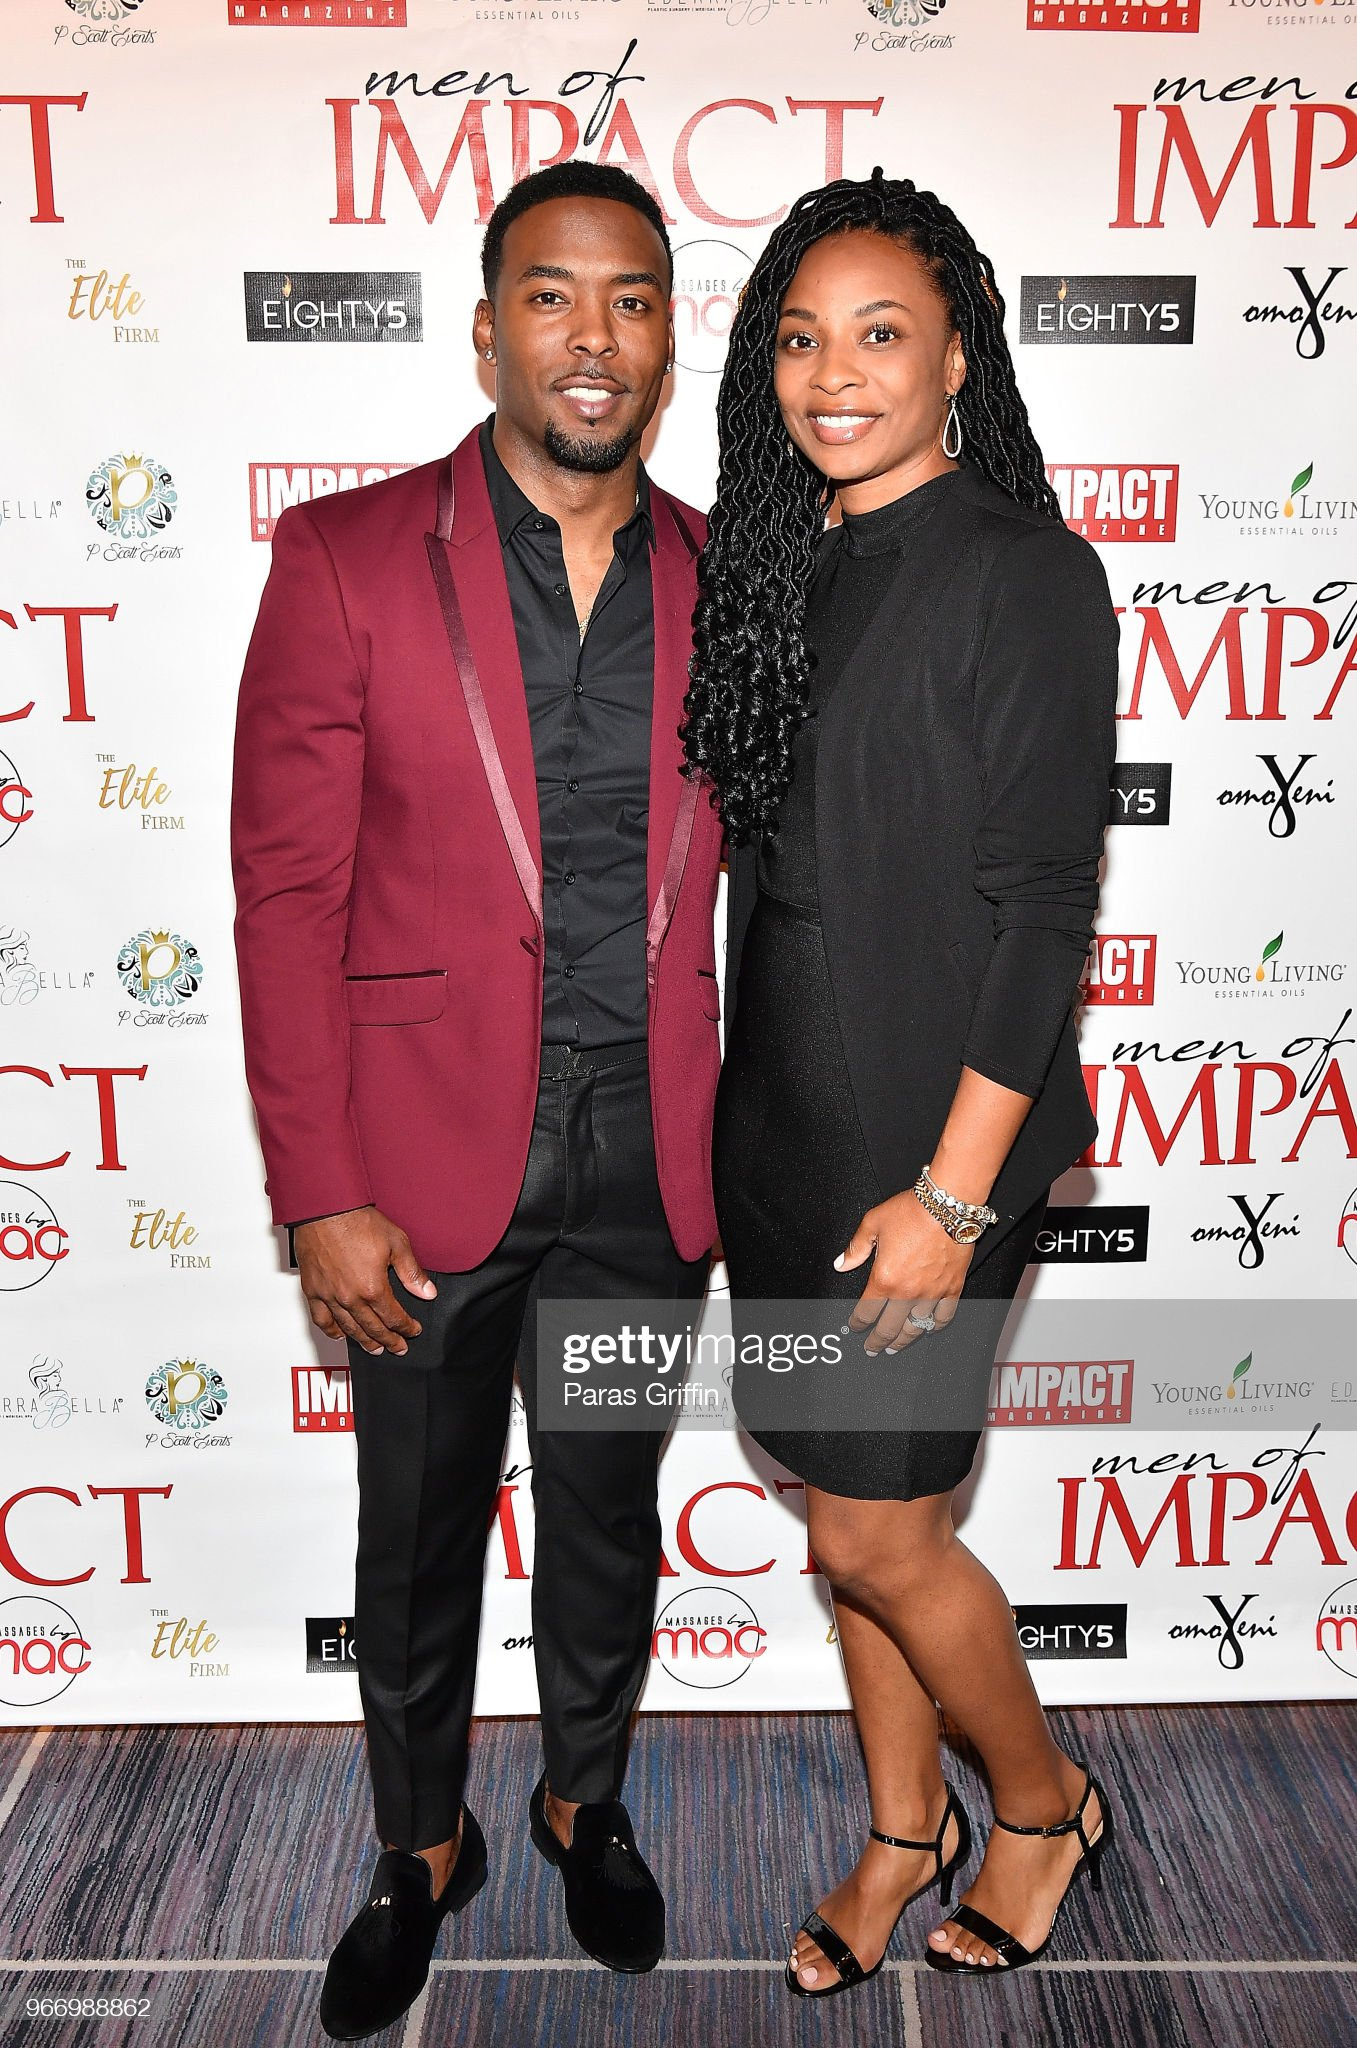 ¿Cuánto mide Andrew Hawkins? - Real height Retired-nfl-player-andrew-hawkins-with-wife-attend-men-of-impact-at-picture-id966988862?s=2048x2048